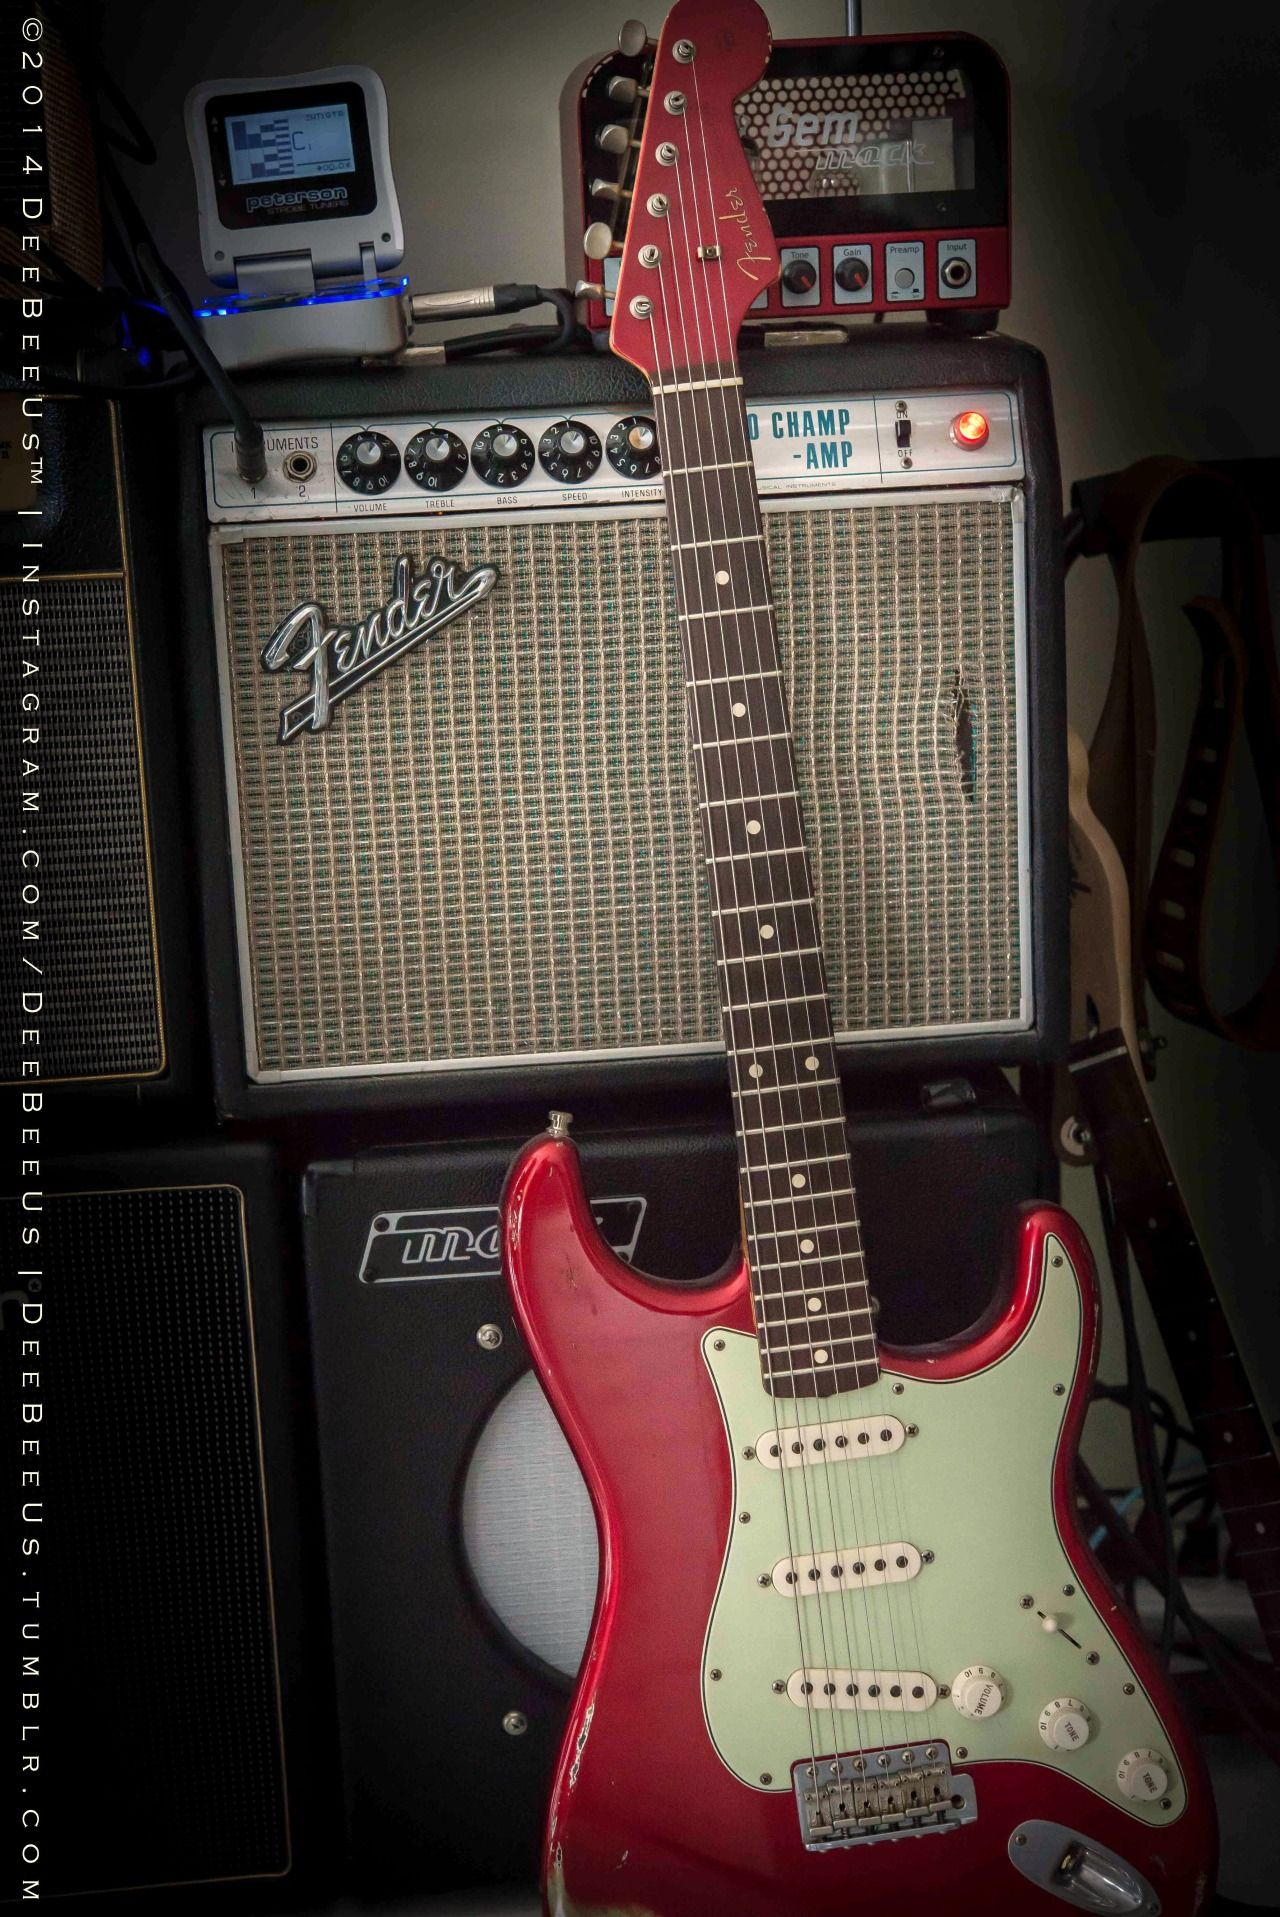 2006 Fender Custom Shop '60 Stratocaster Relic, candy apple red, with 1968 Fender Vibro Champ.